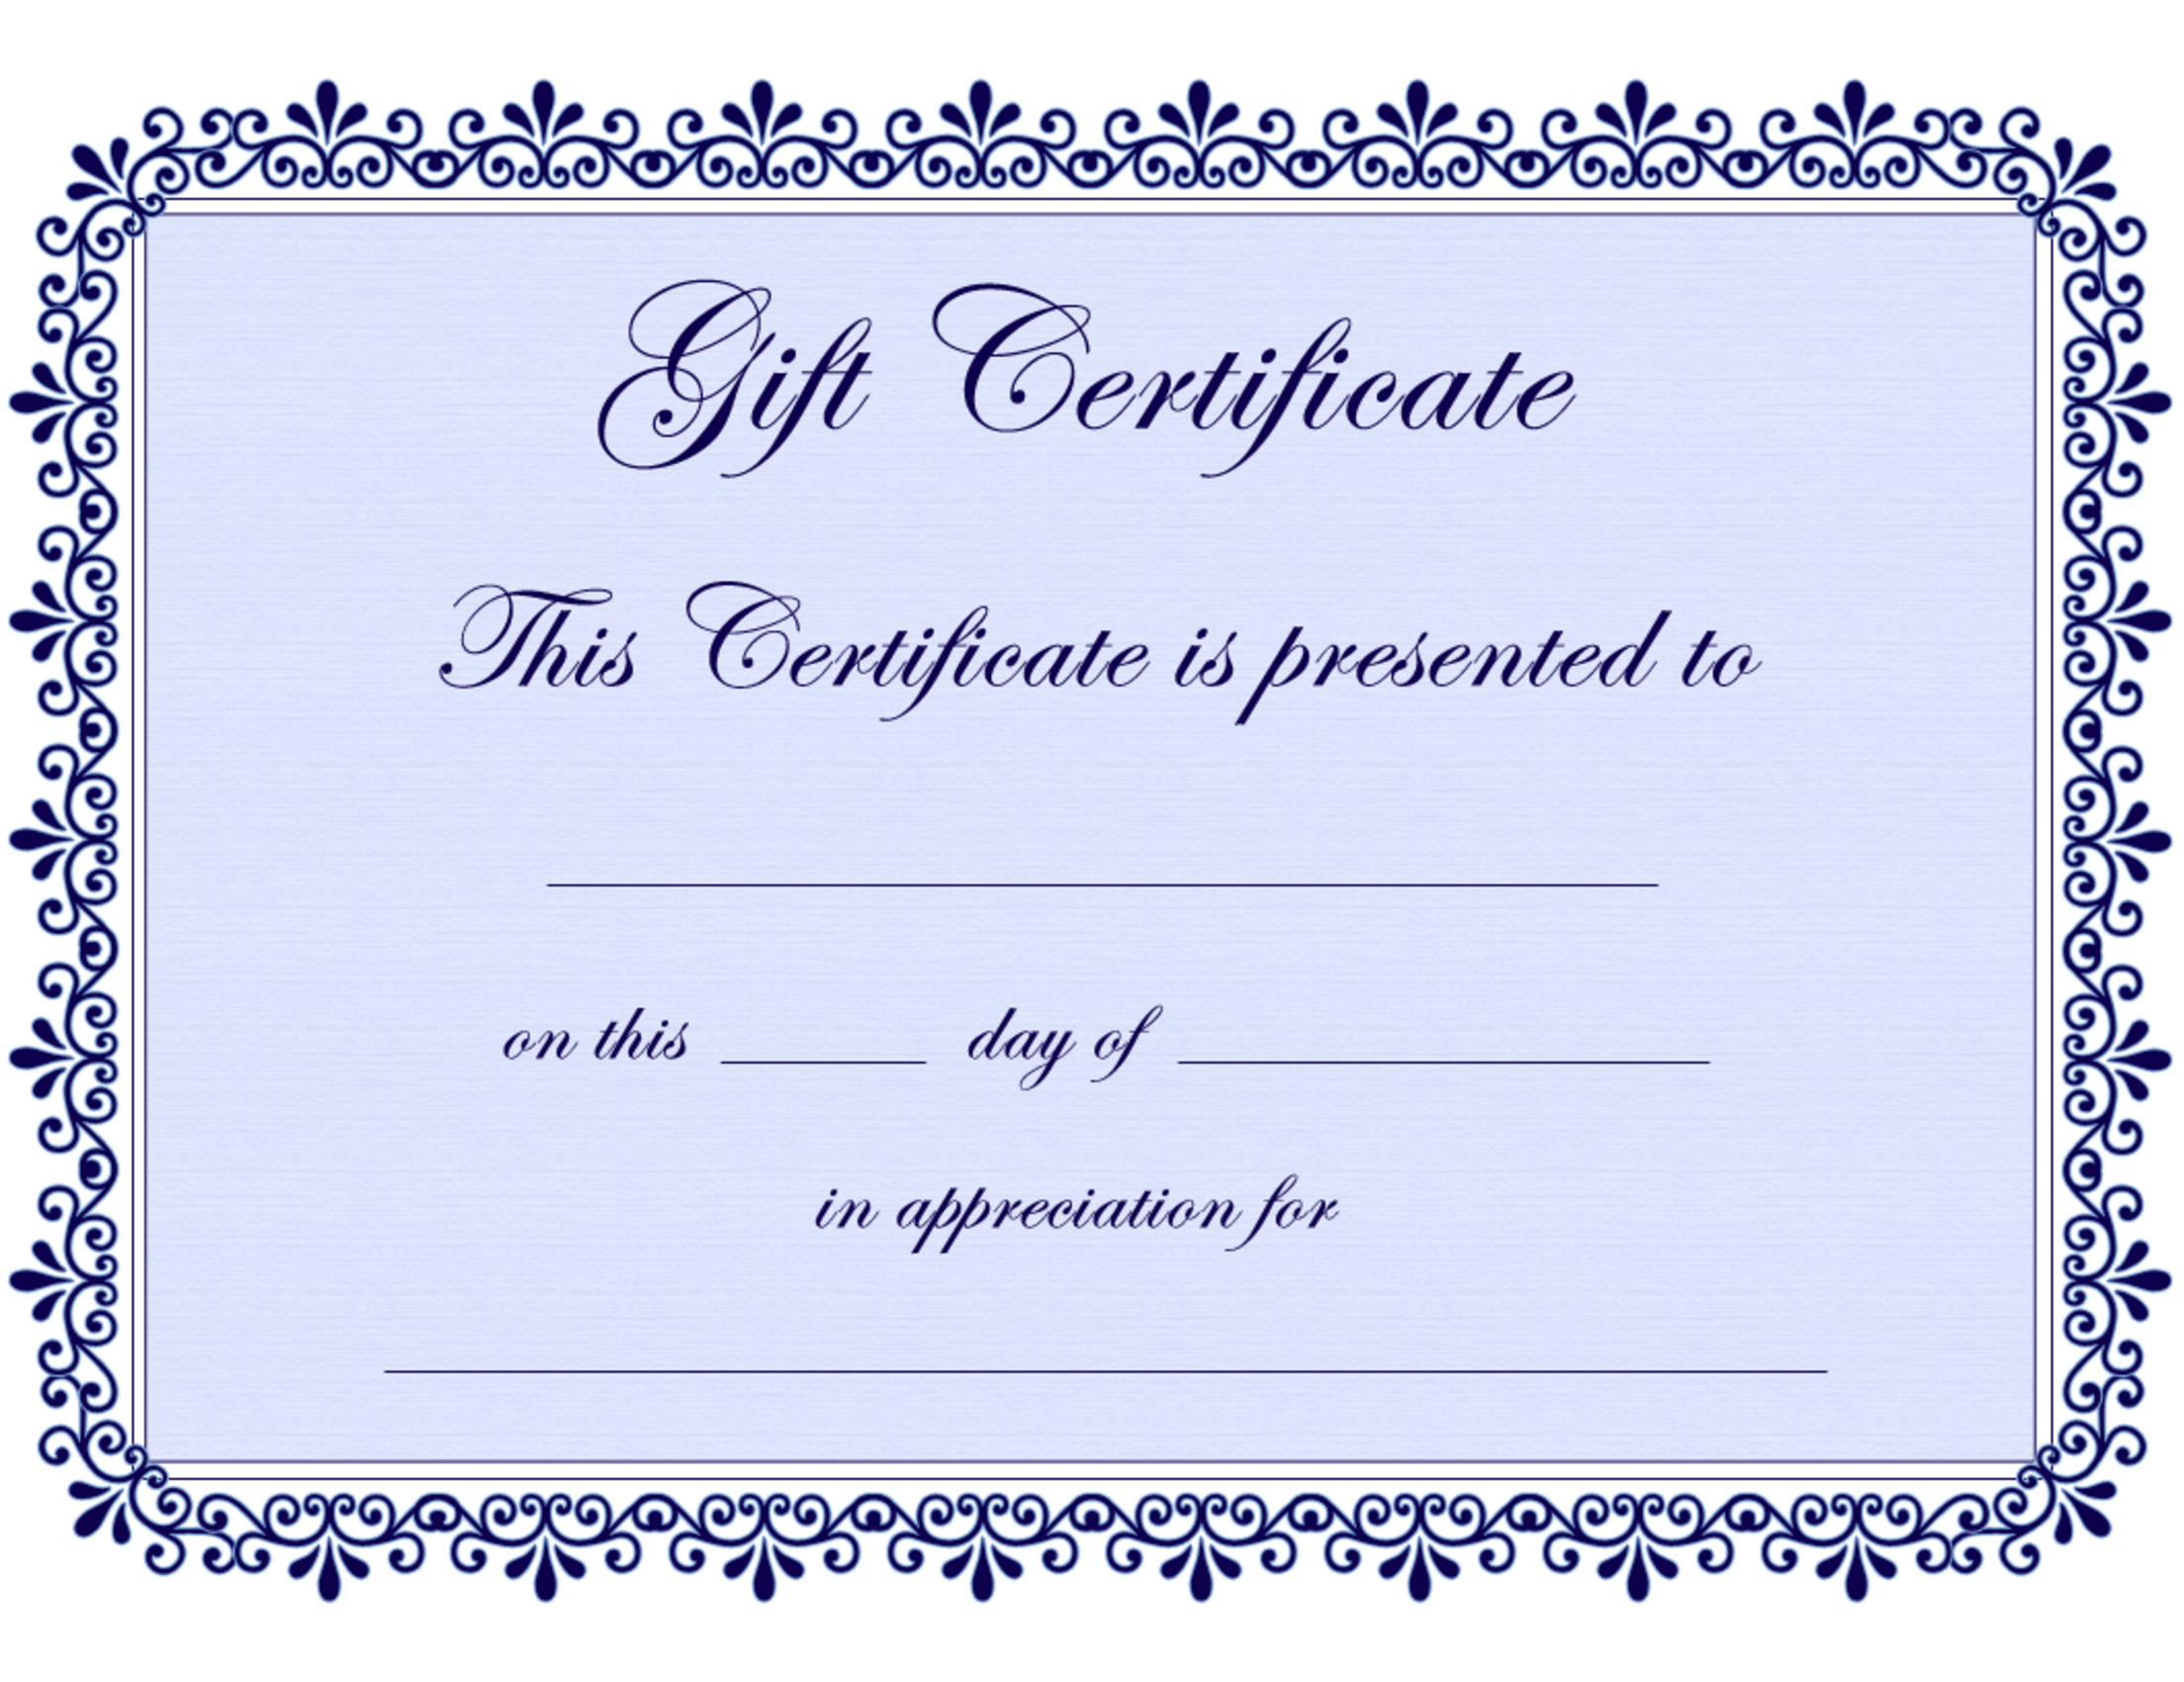 Free Certificate Template Download Free Clip Art Free Clip Art On Regarding Free Art Certificate Templates